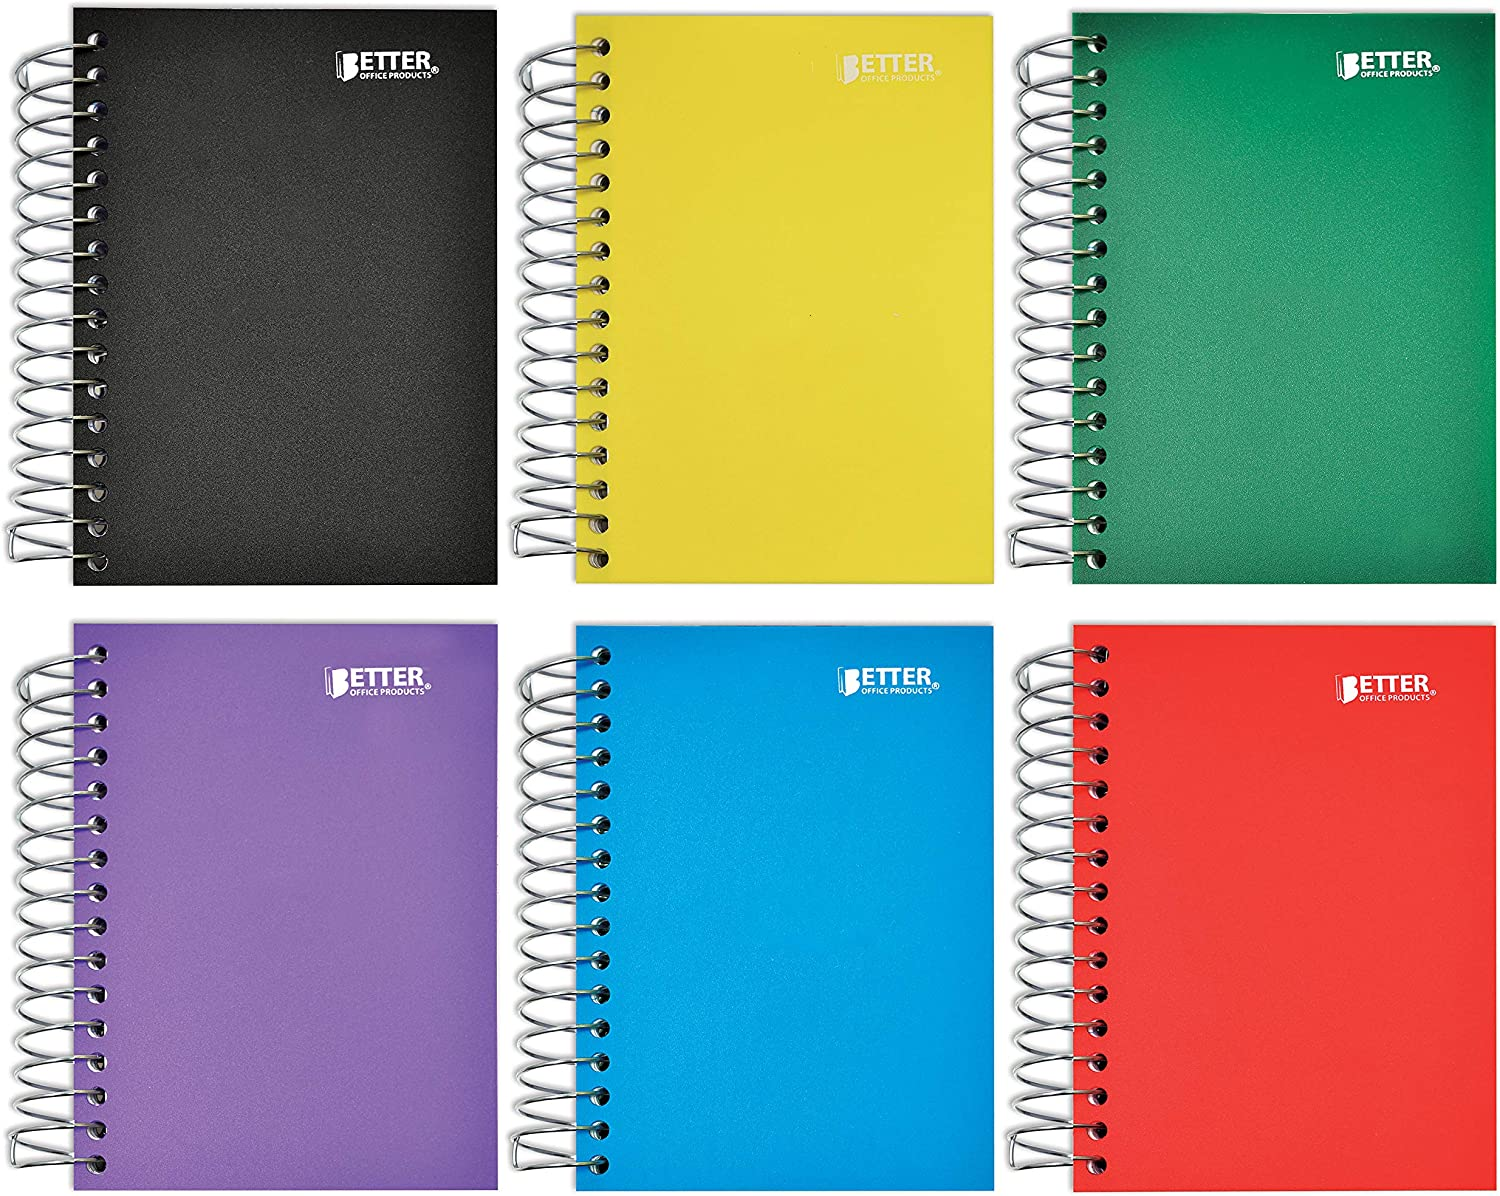 Fat Book Spiral Notebooks, 6 Pack, Small Notebooks with Poly Plastic Covers, 5.5 x 4 inches, 1-Subject, College Rule, 200 Sheets, by Better Office Products, 6 Assorted Primary Colors, 6 Count